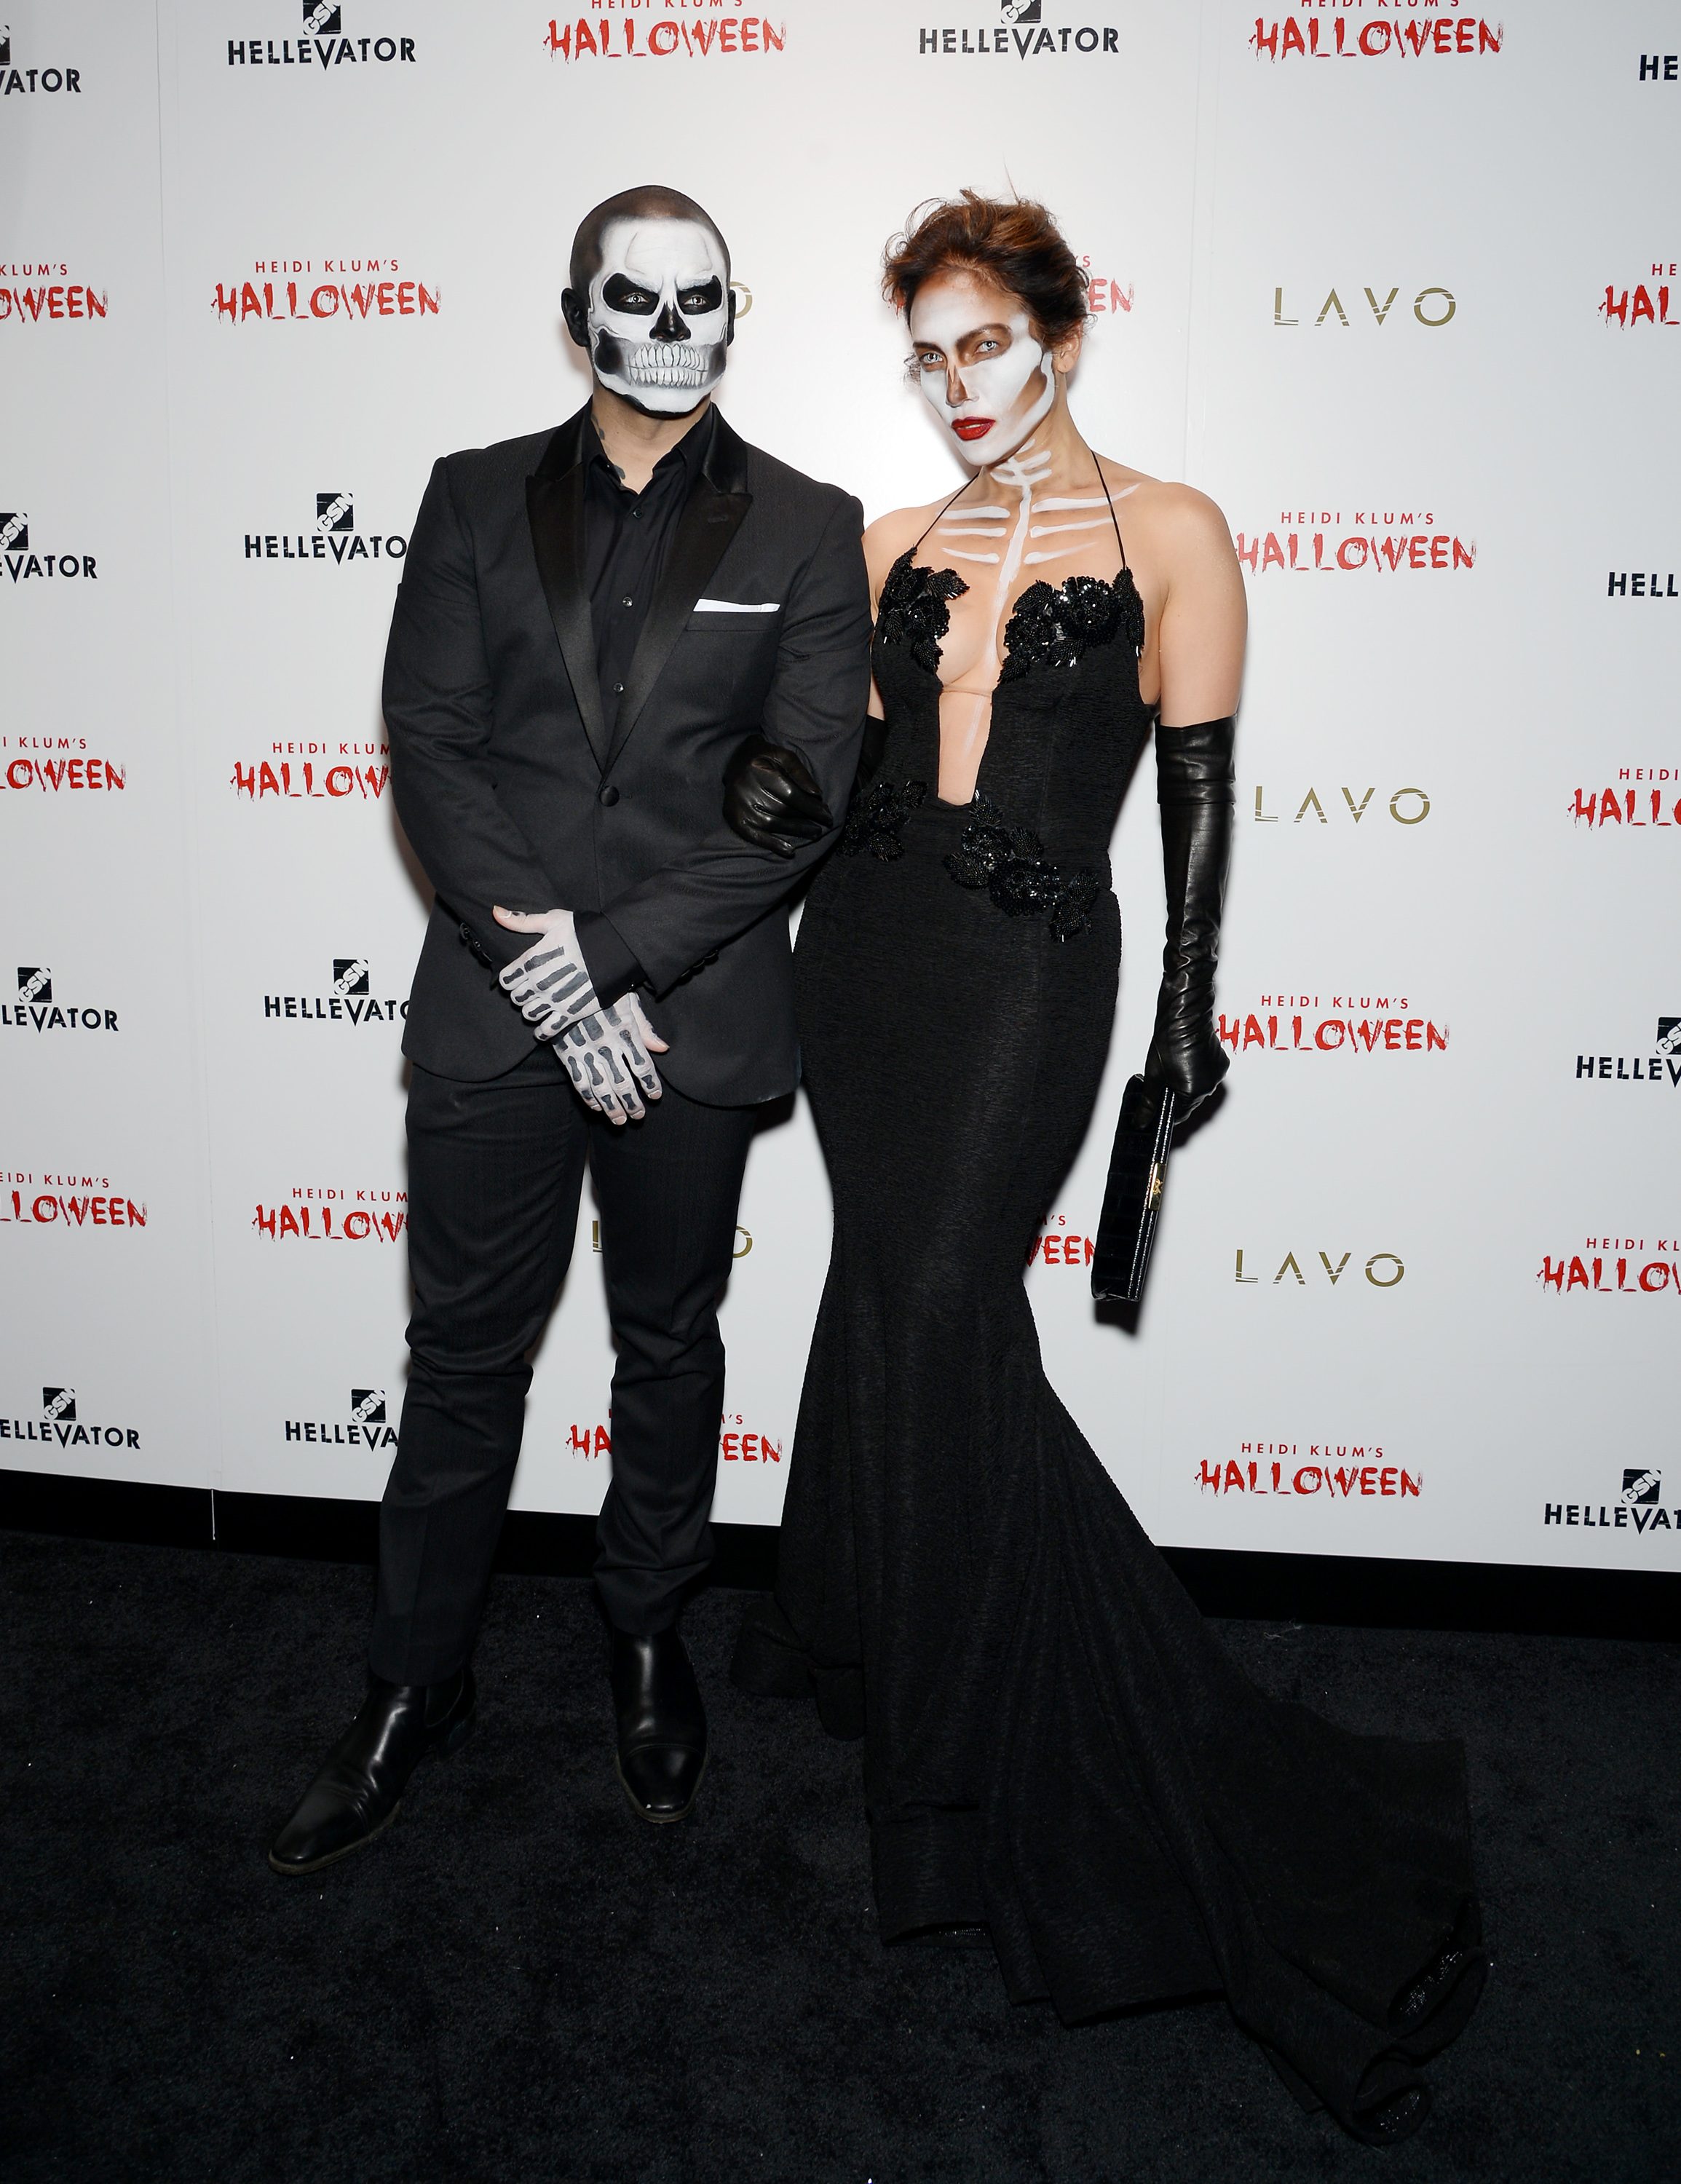 Best Non-Costume Costume: Casper Smart and J. Lo came attired basically like themselves, but with face paint, but still managed to look fabulously on-theme.